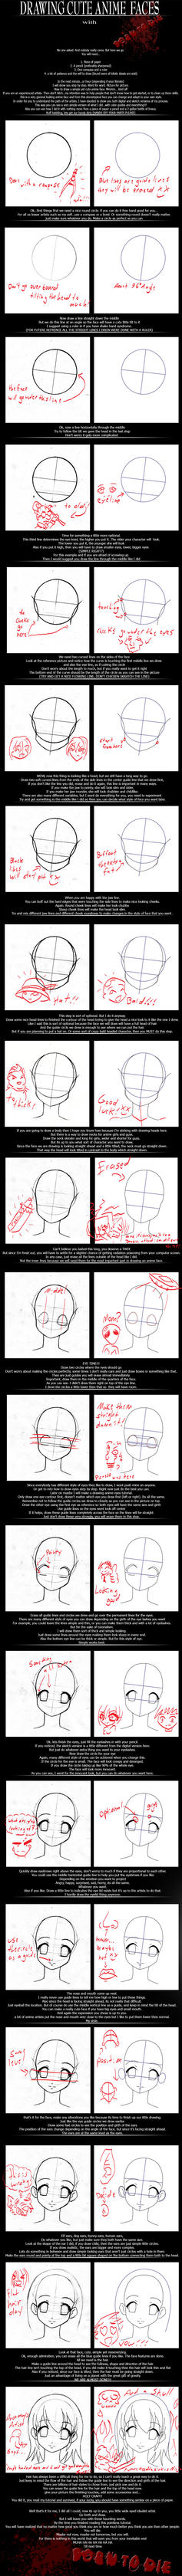 HOW TO DRAW ANIME FACES by B0RN-T0-DIE